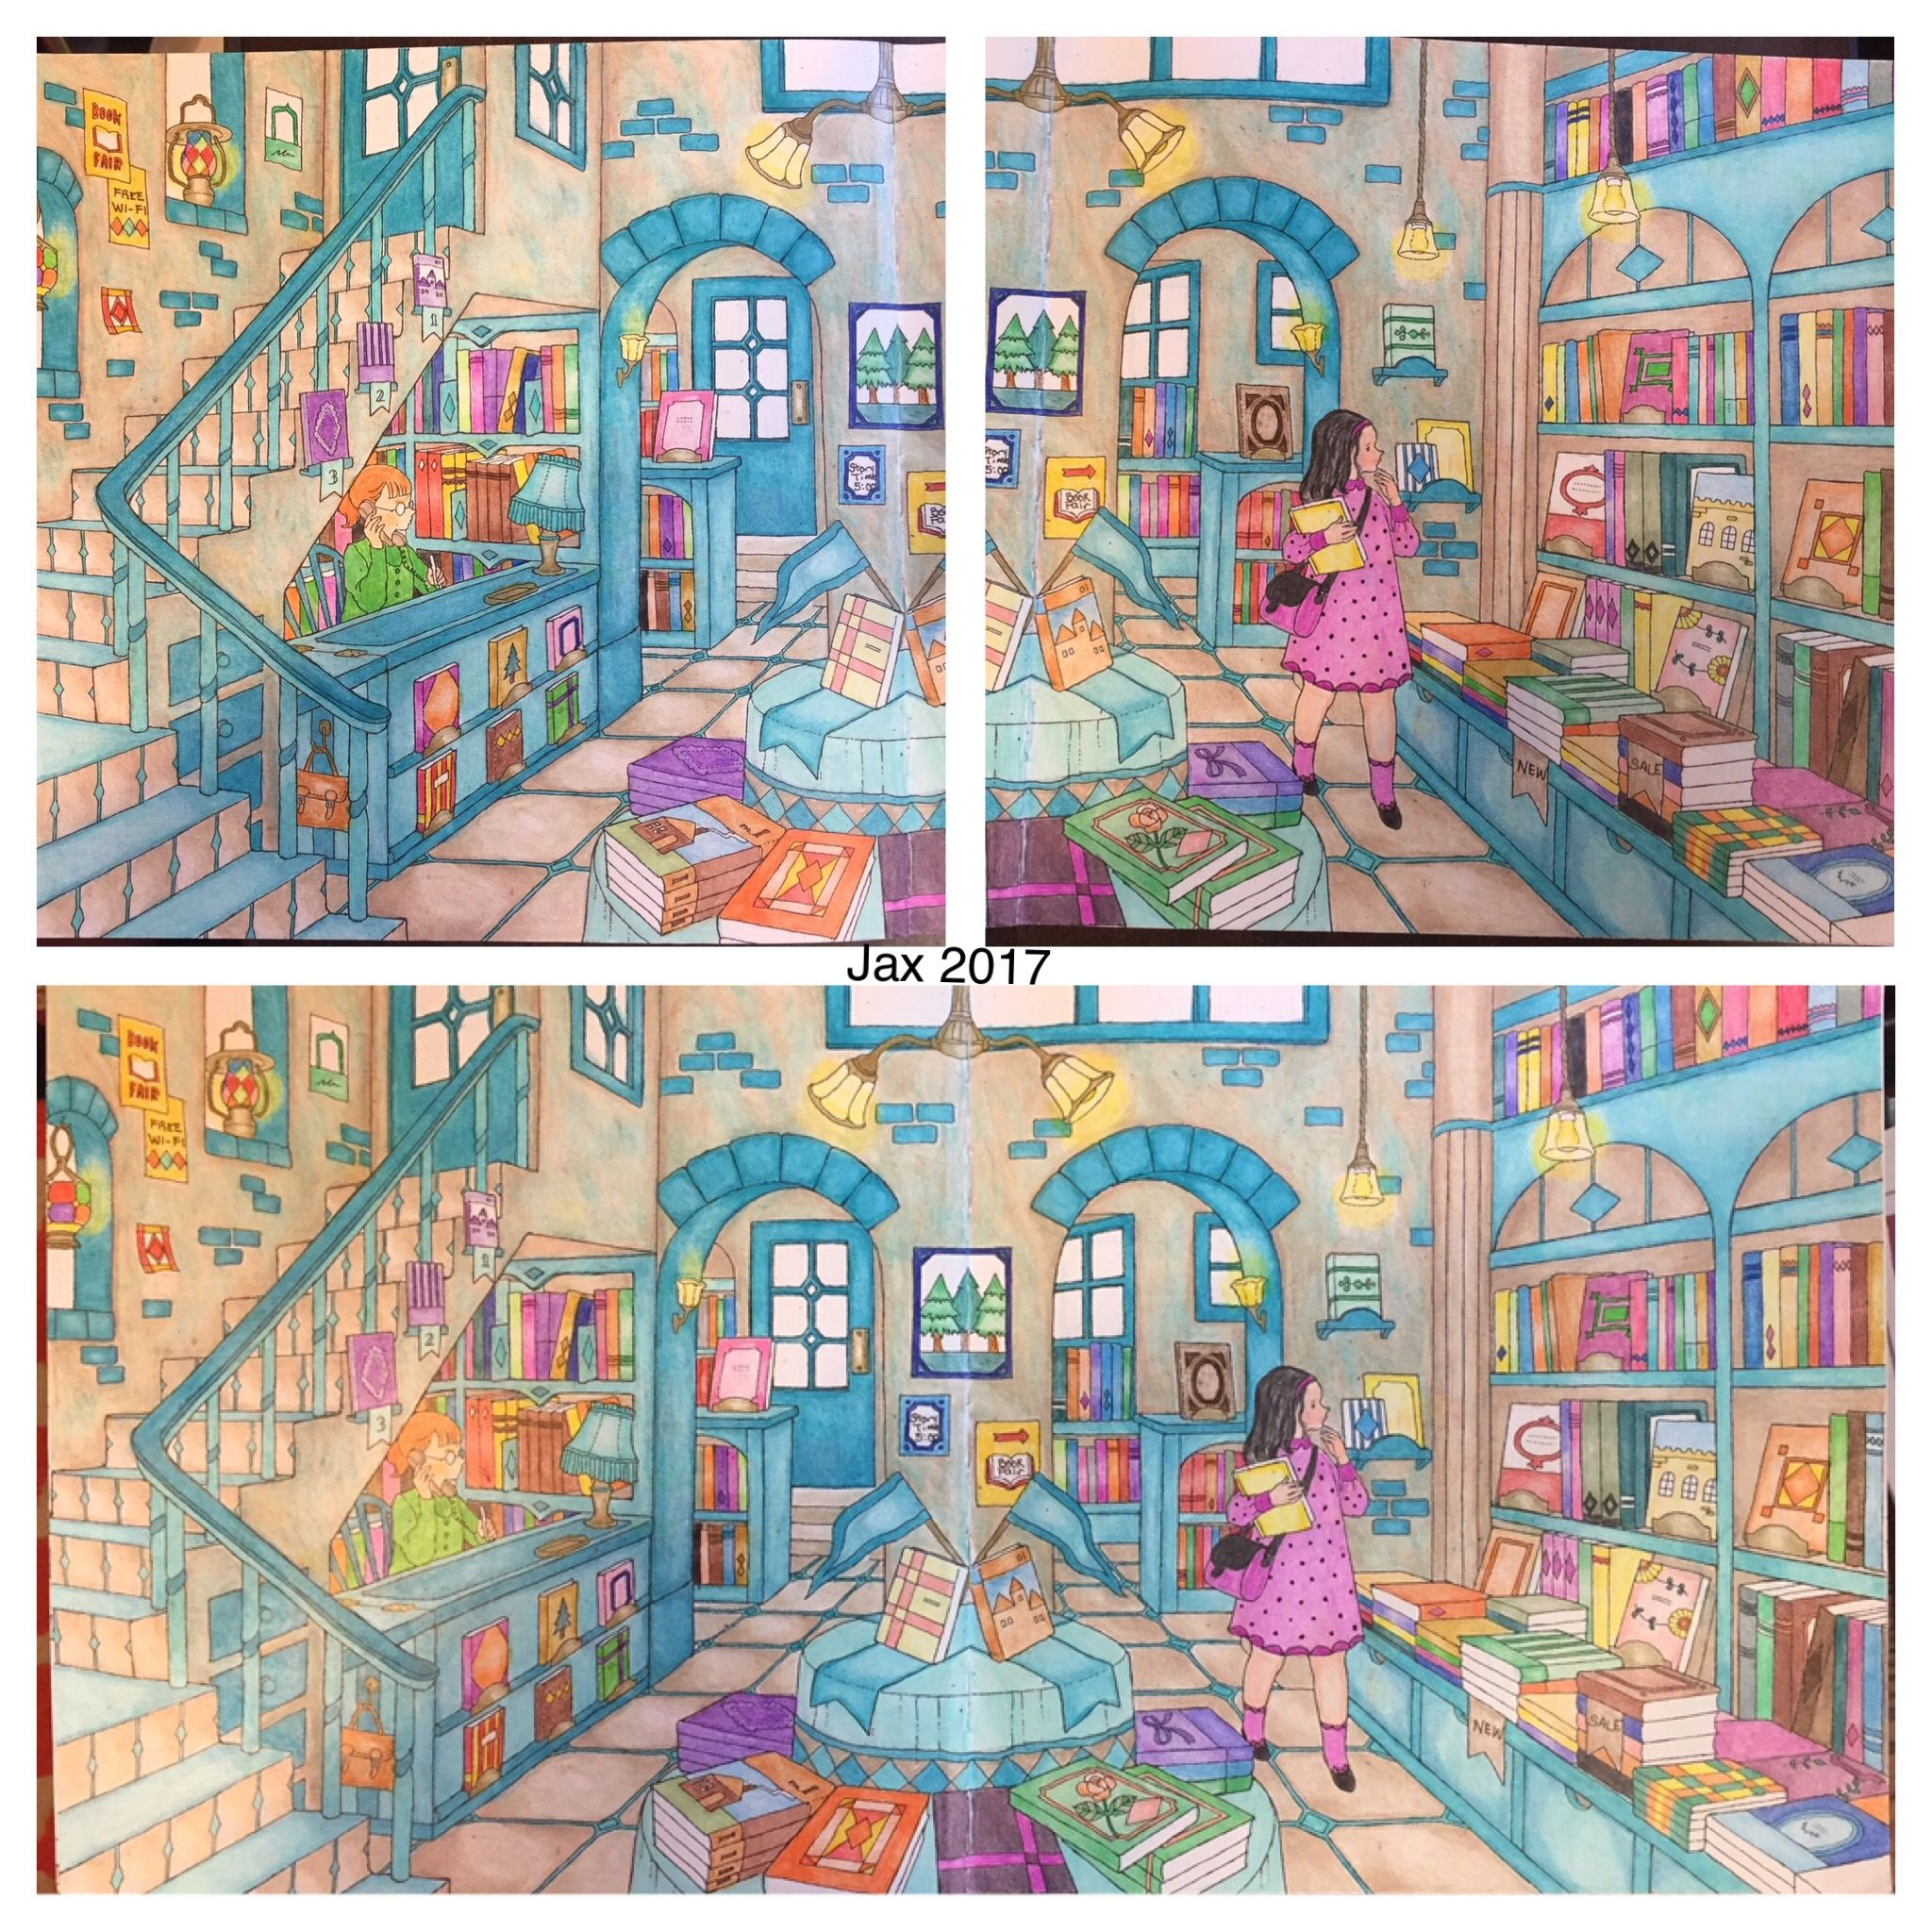 my colorful town by chiaki ida left page outside of library